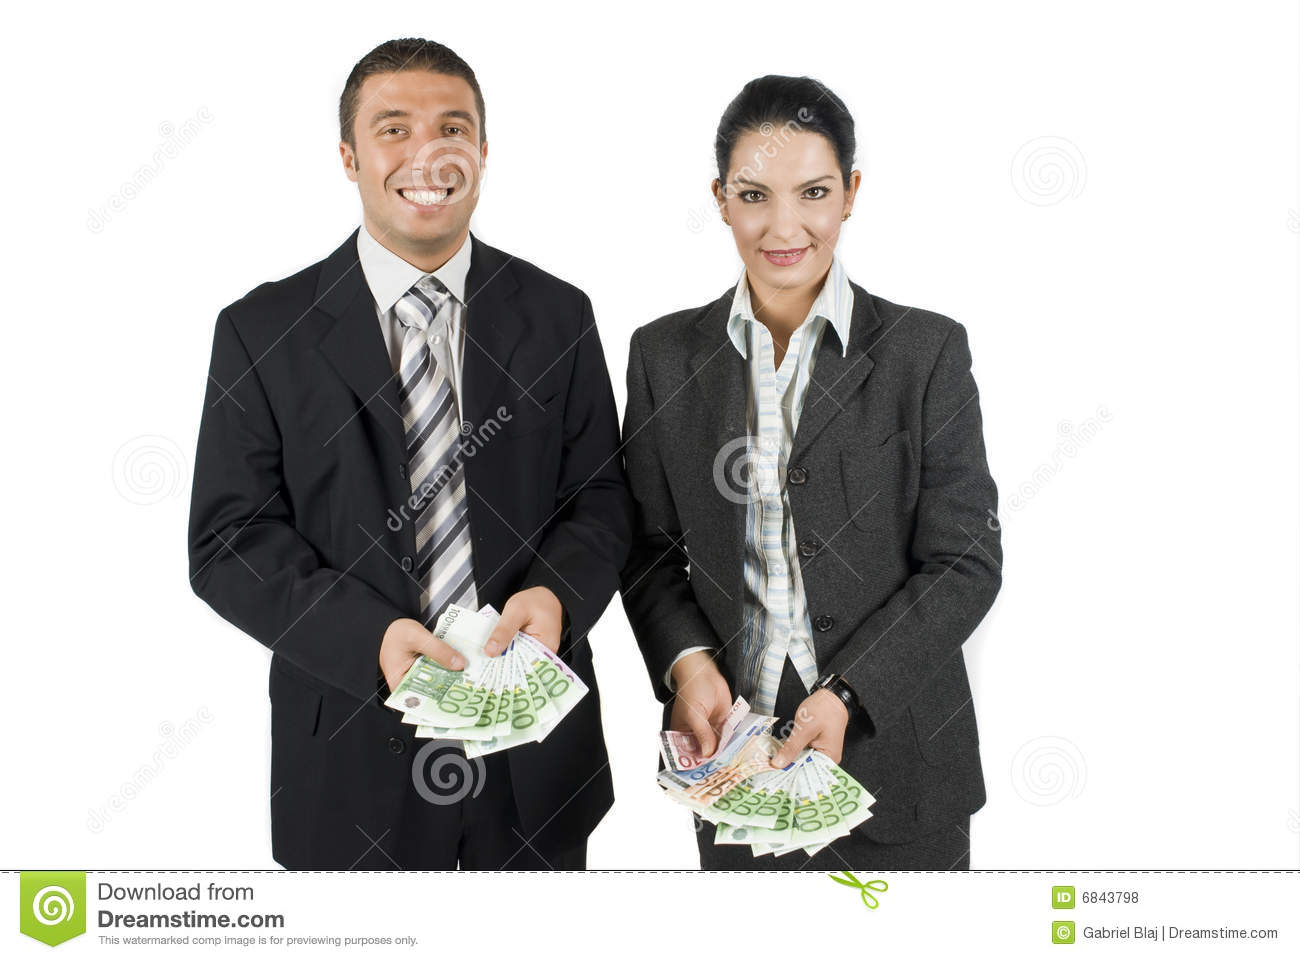 Business people with money